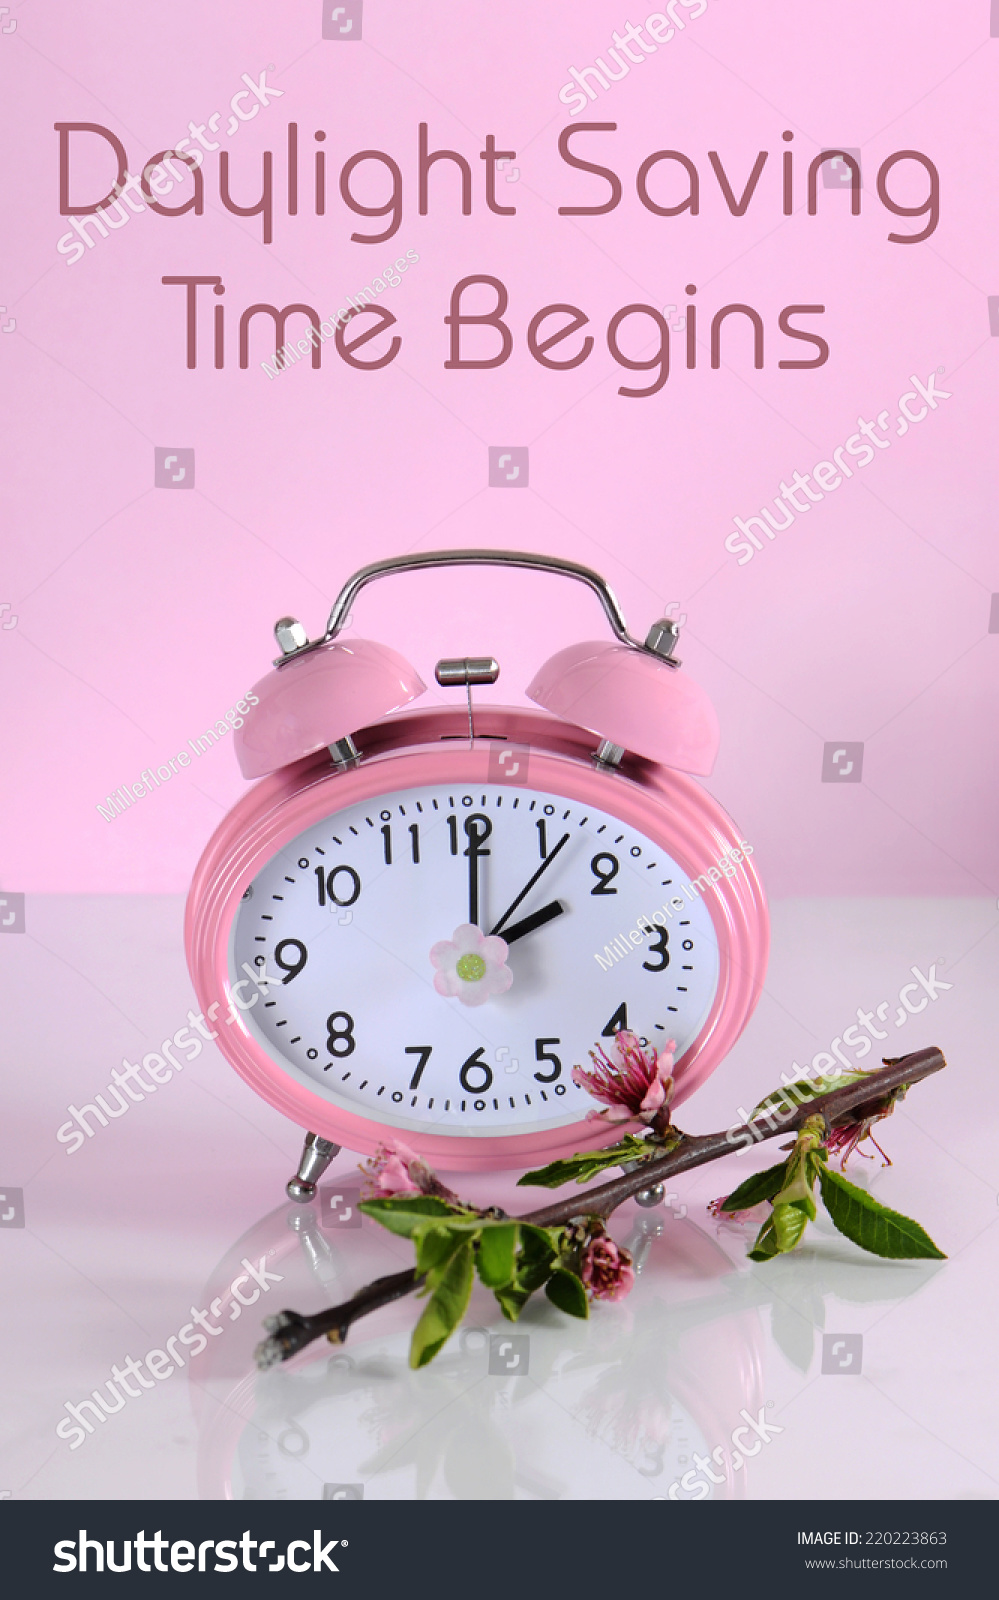 Daylight savings time begins clock concept stock photo for When was daylight savings time started